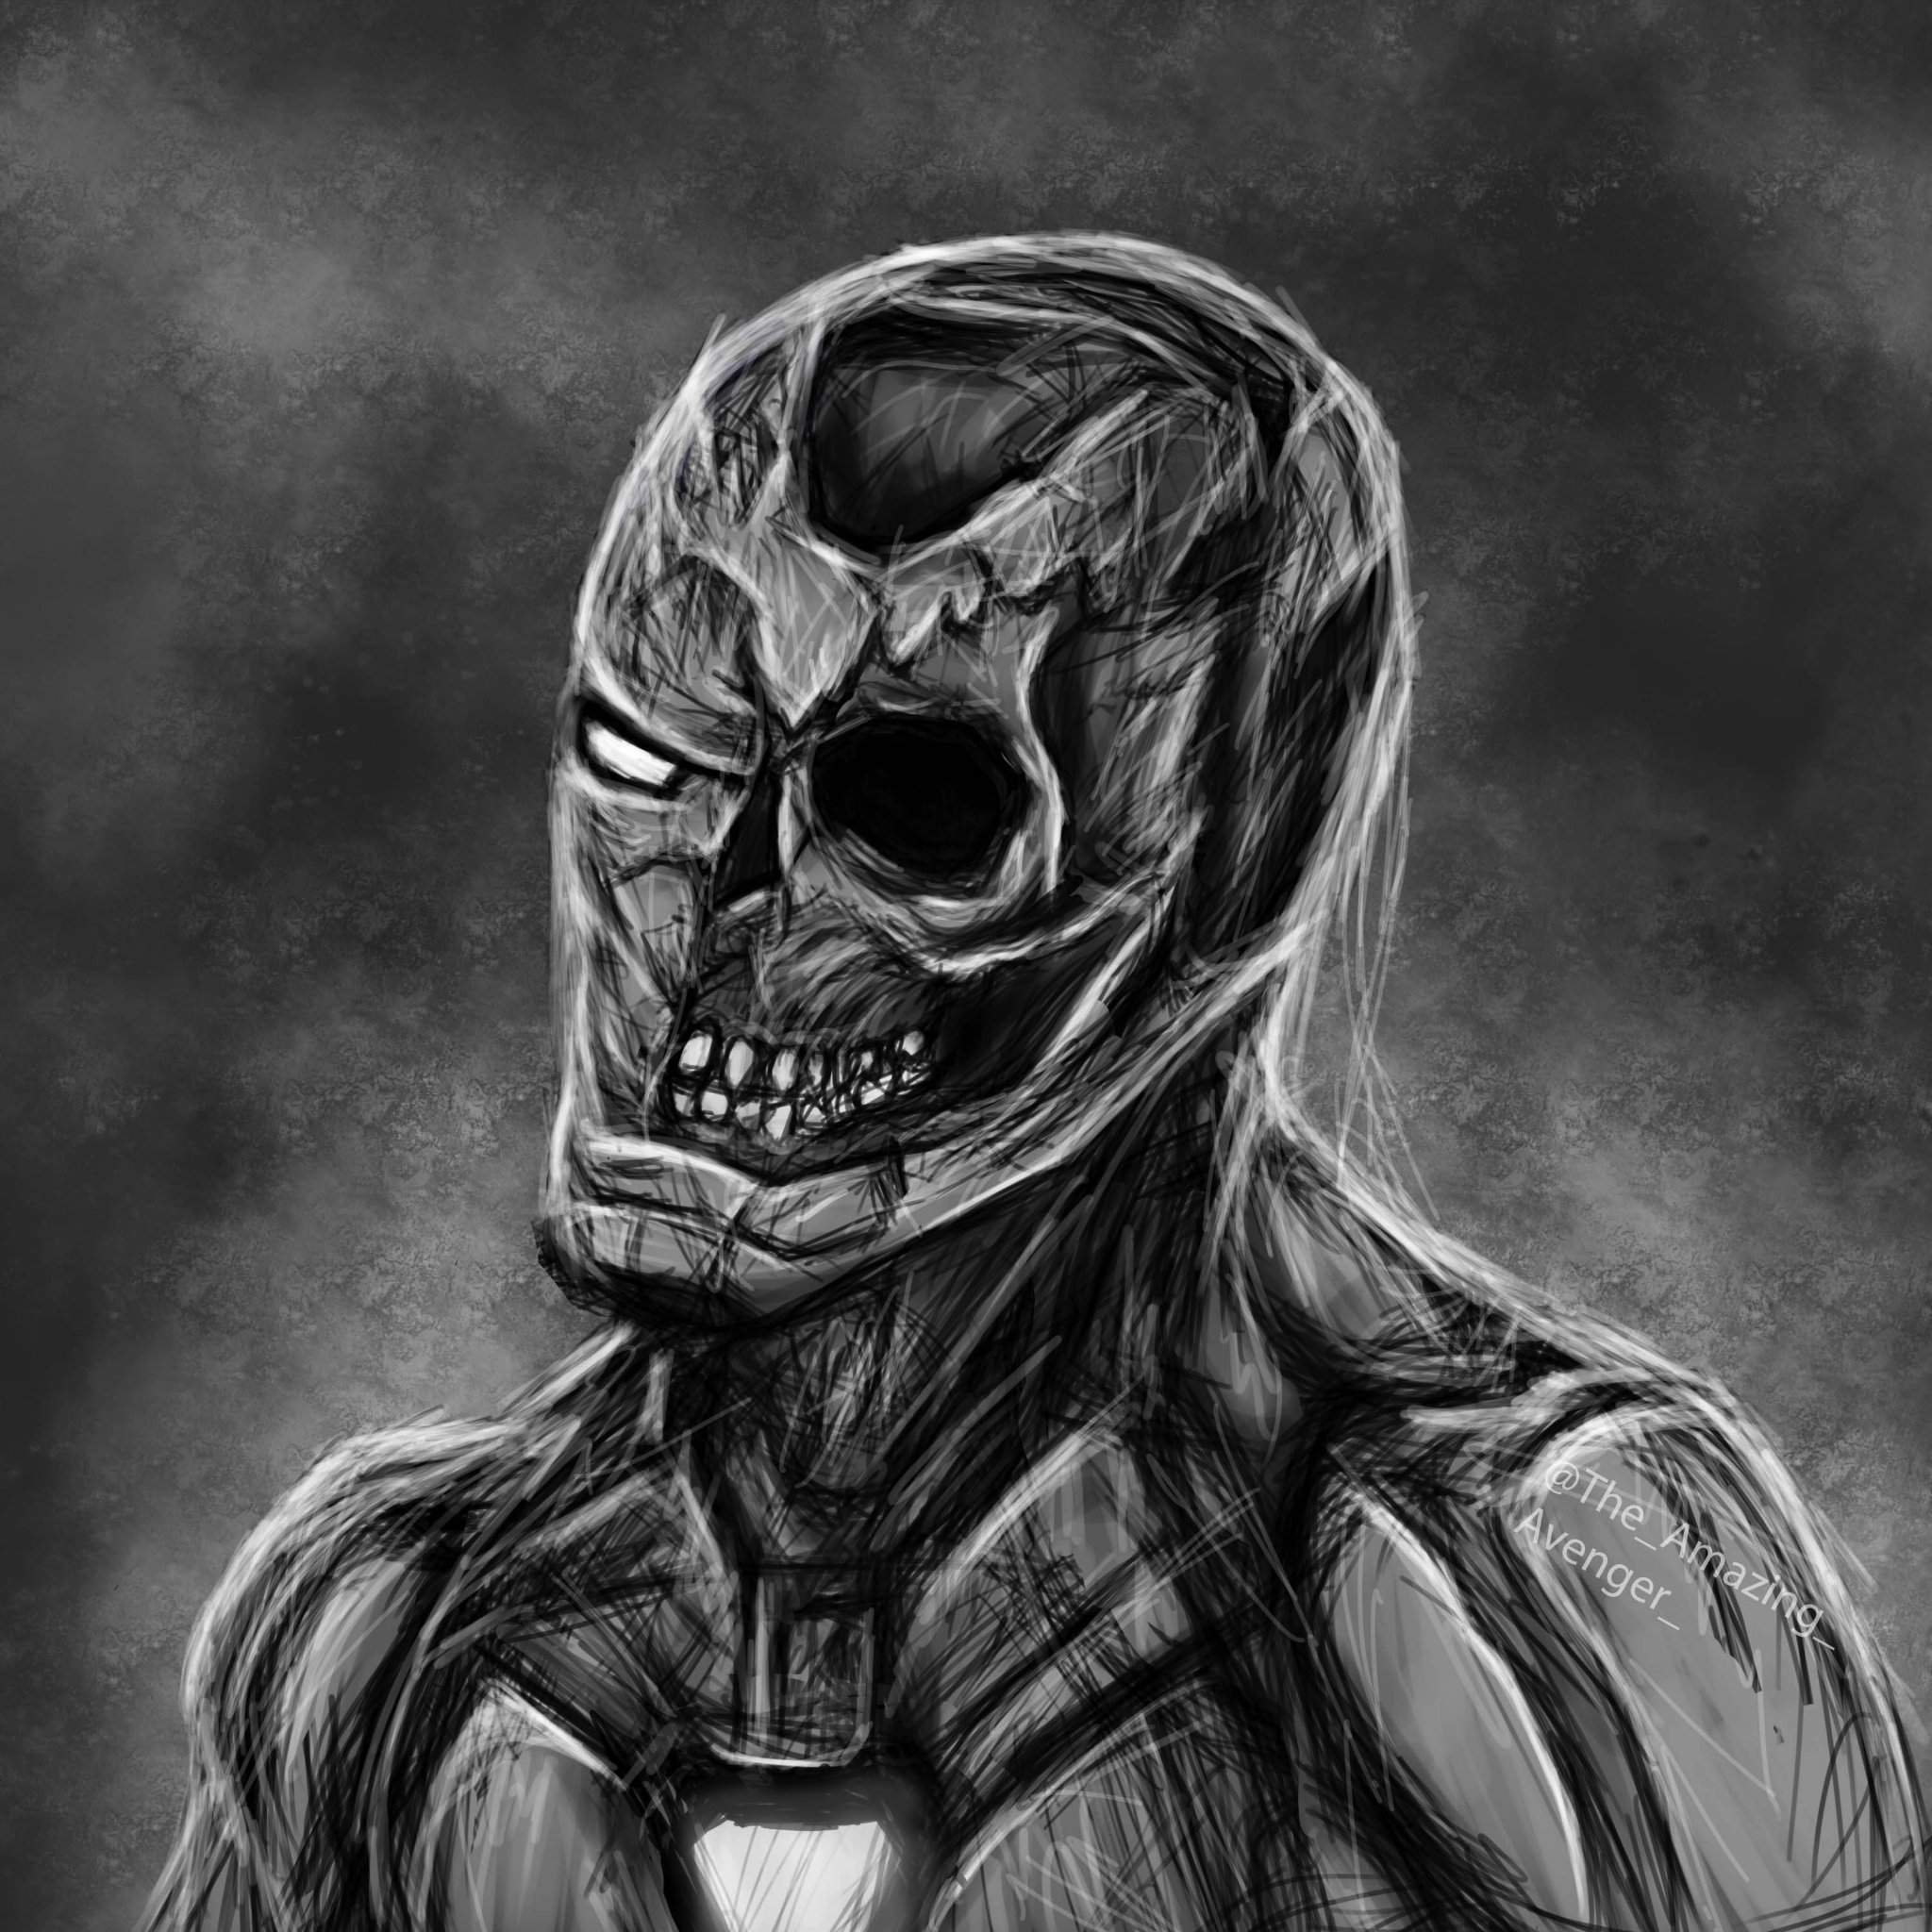 pictures of iron man mvc iron man silver black by ishikahiruma on deviantart of pictures iron man